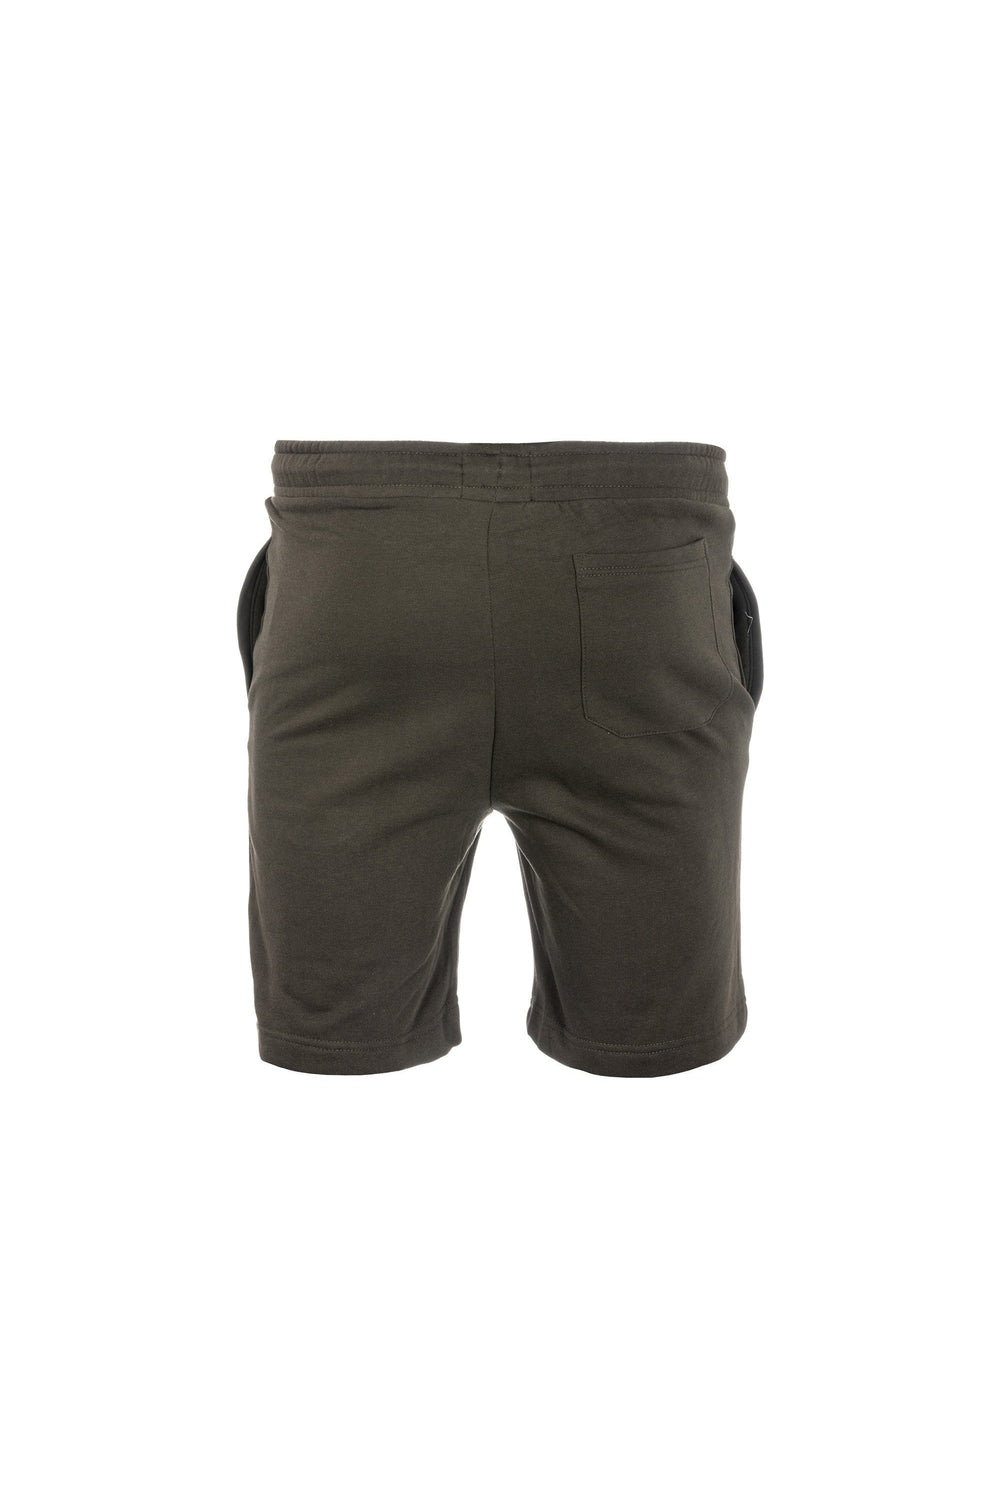 Shorts - YOLC. Sweat Shorts Dark Khaki